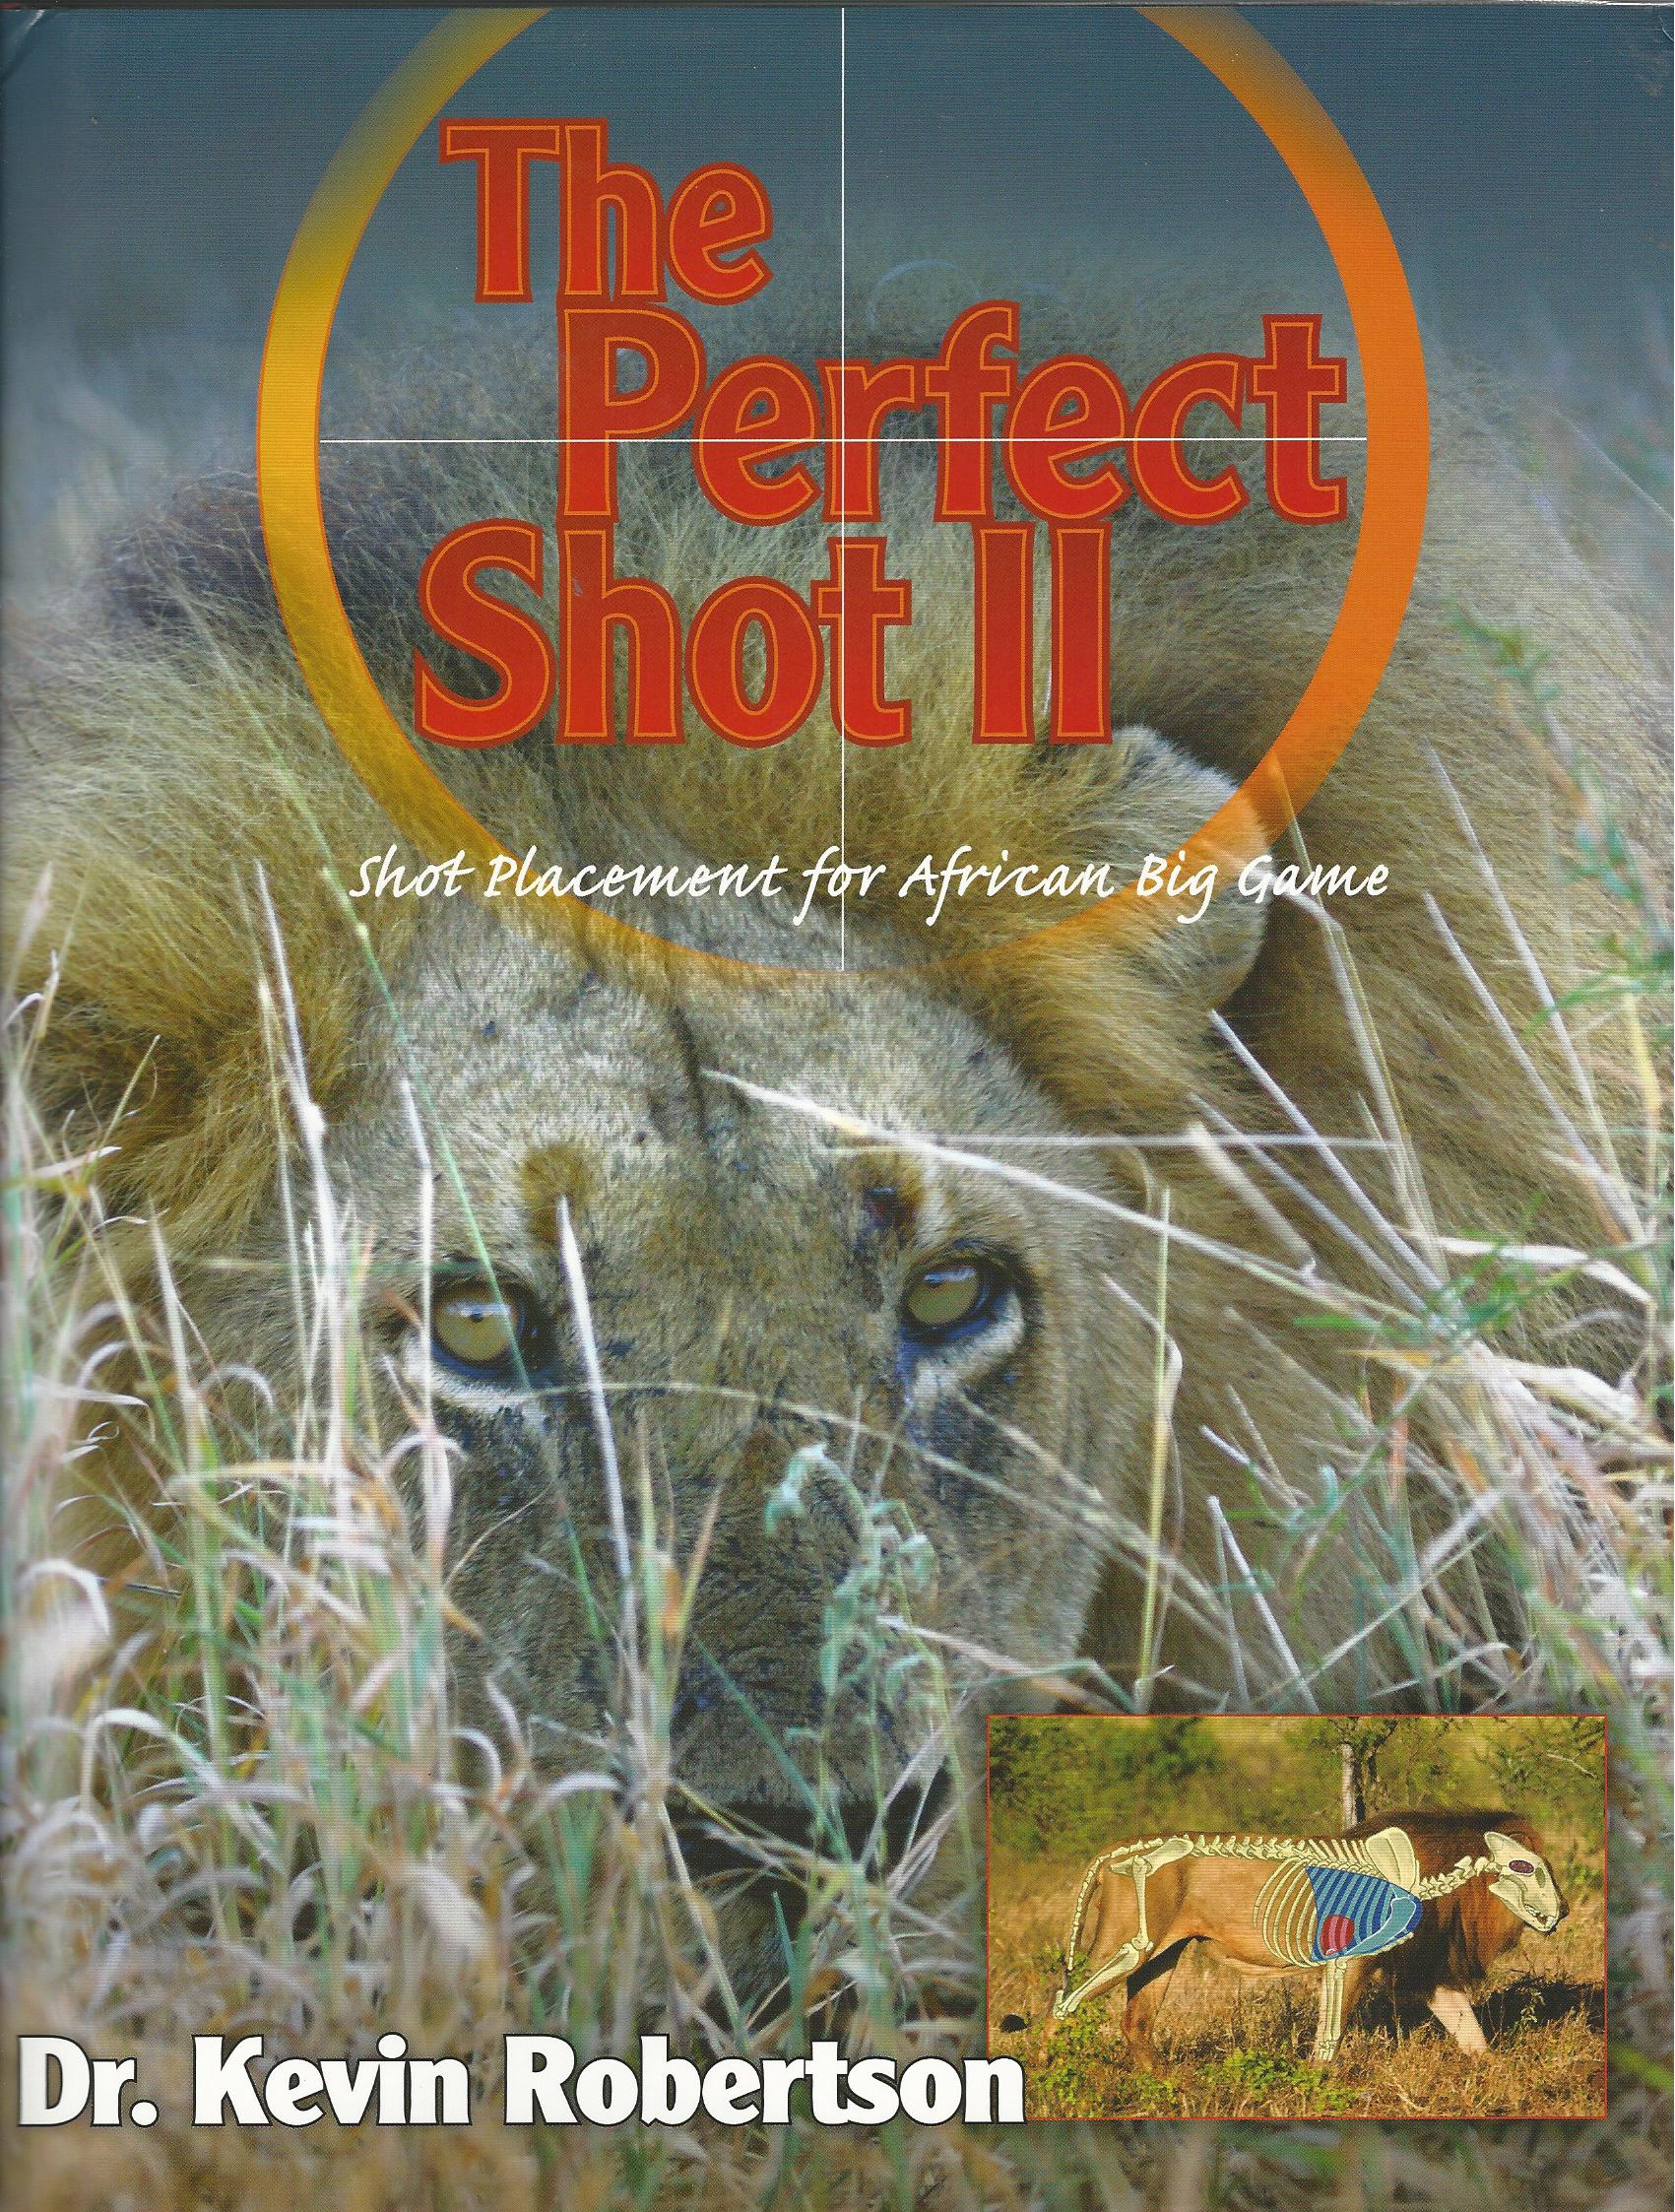 Image for The Perfect Shot II: A Complete Revision of the Shot Placement for African Big Game